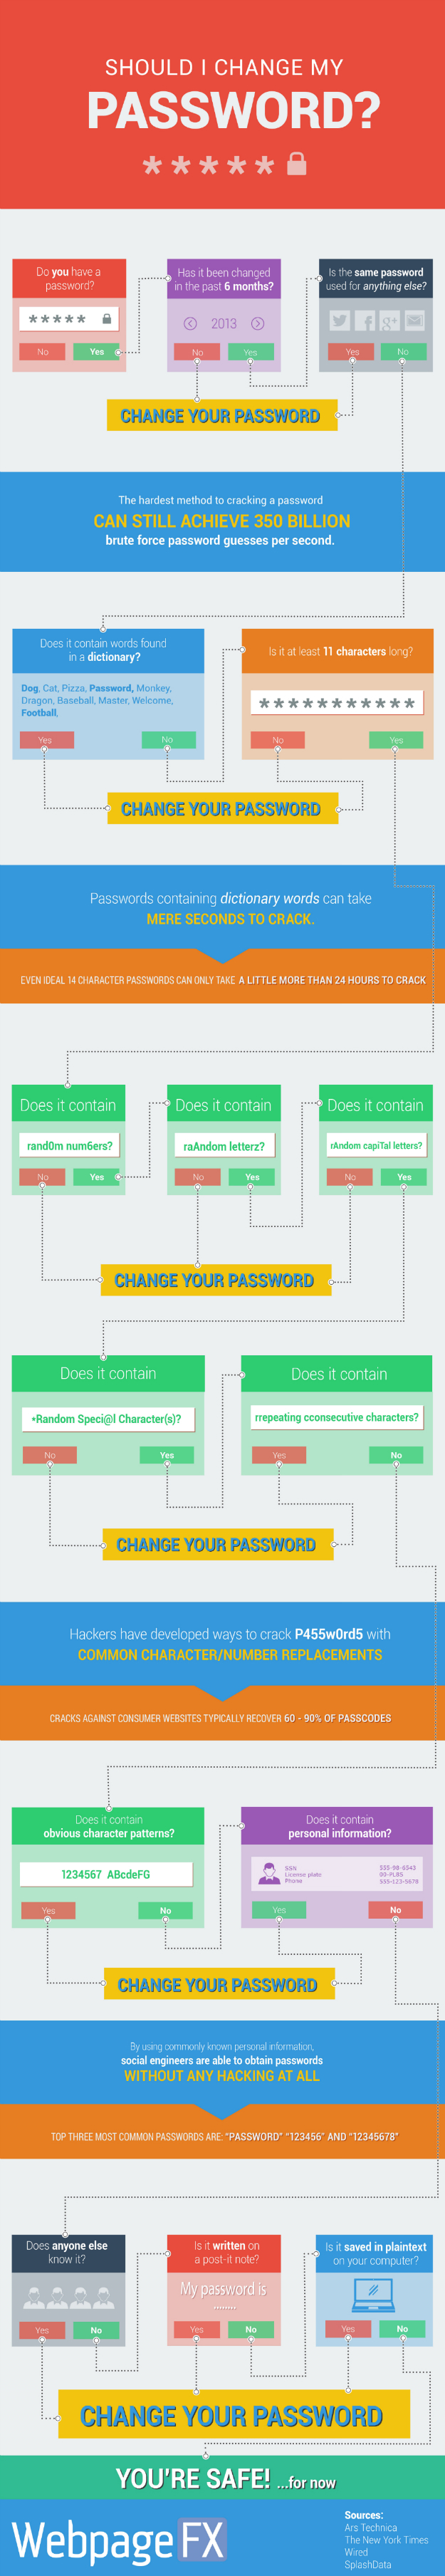 how-to-create-secure-passwords-infographic-full-2